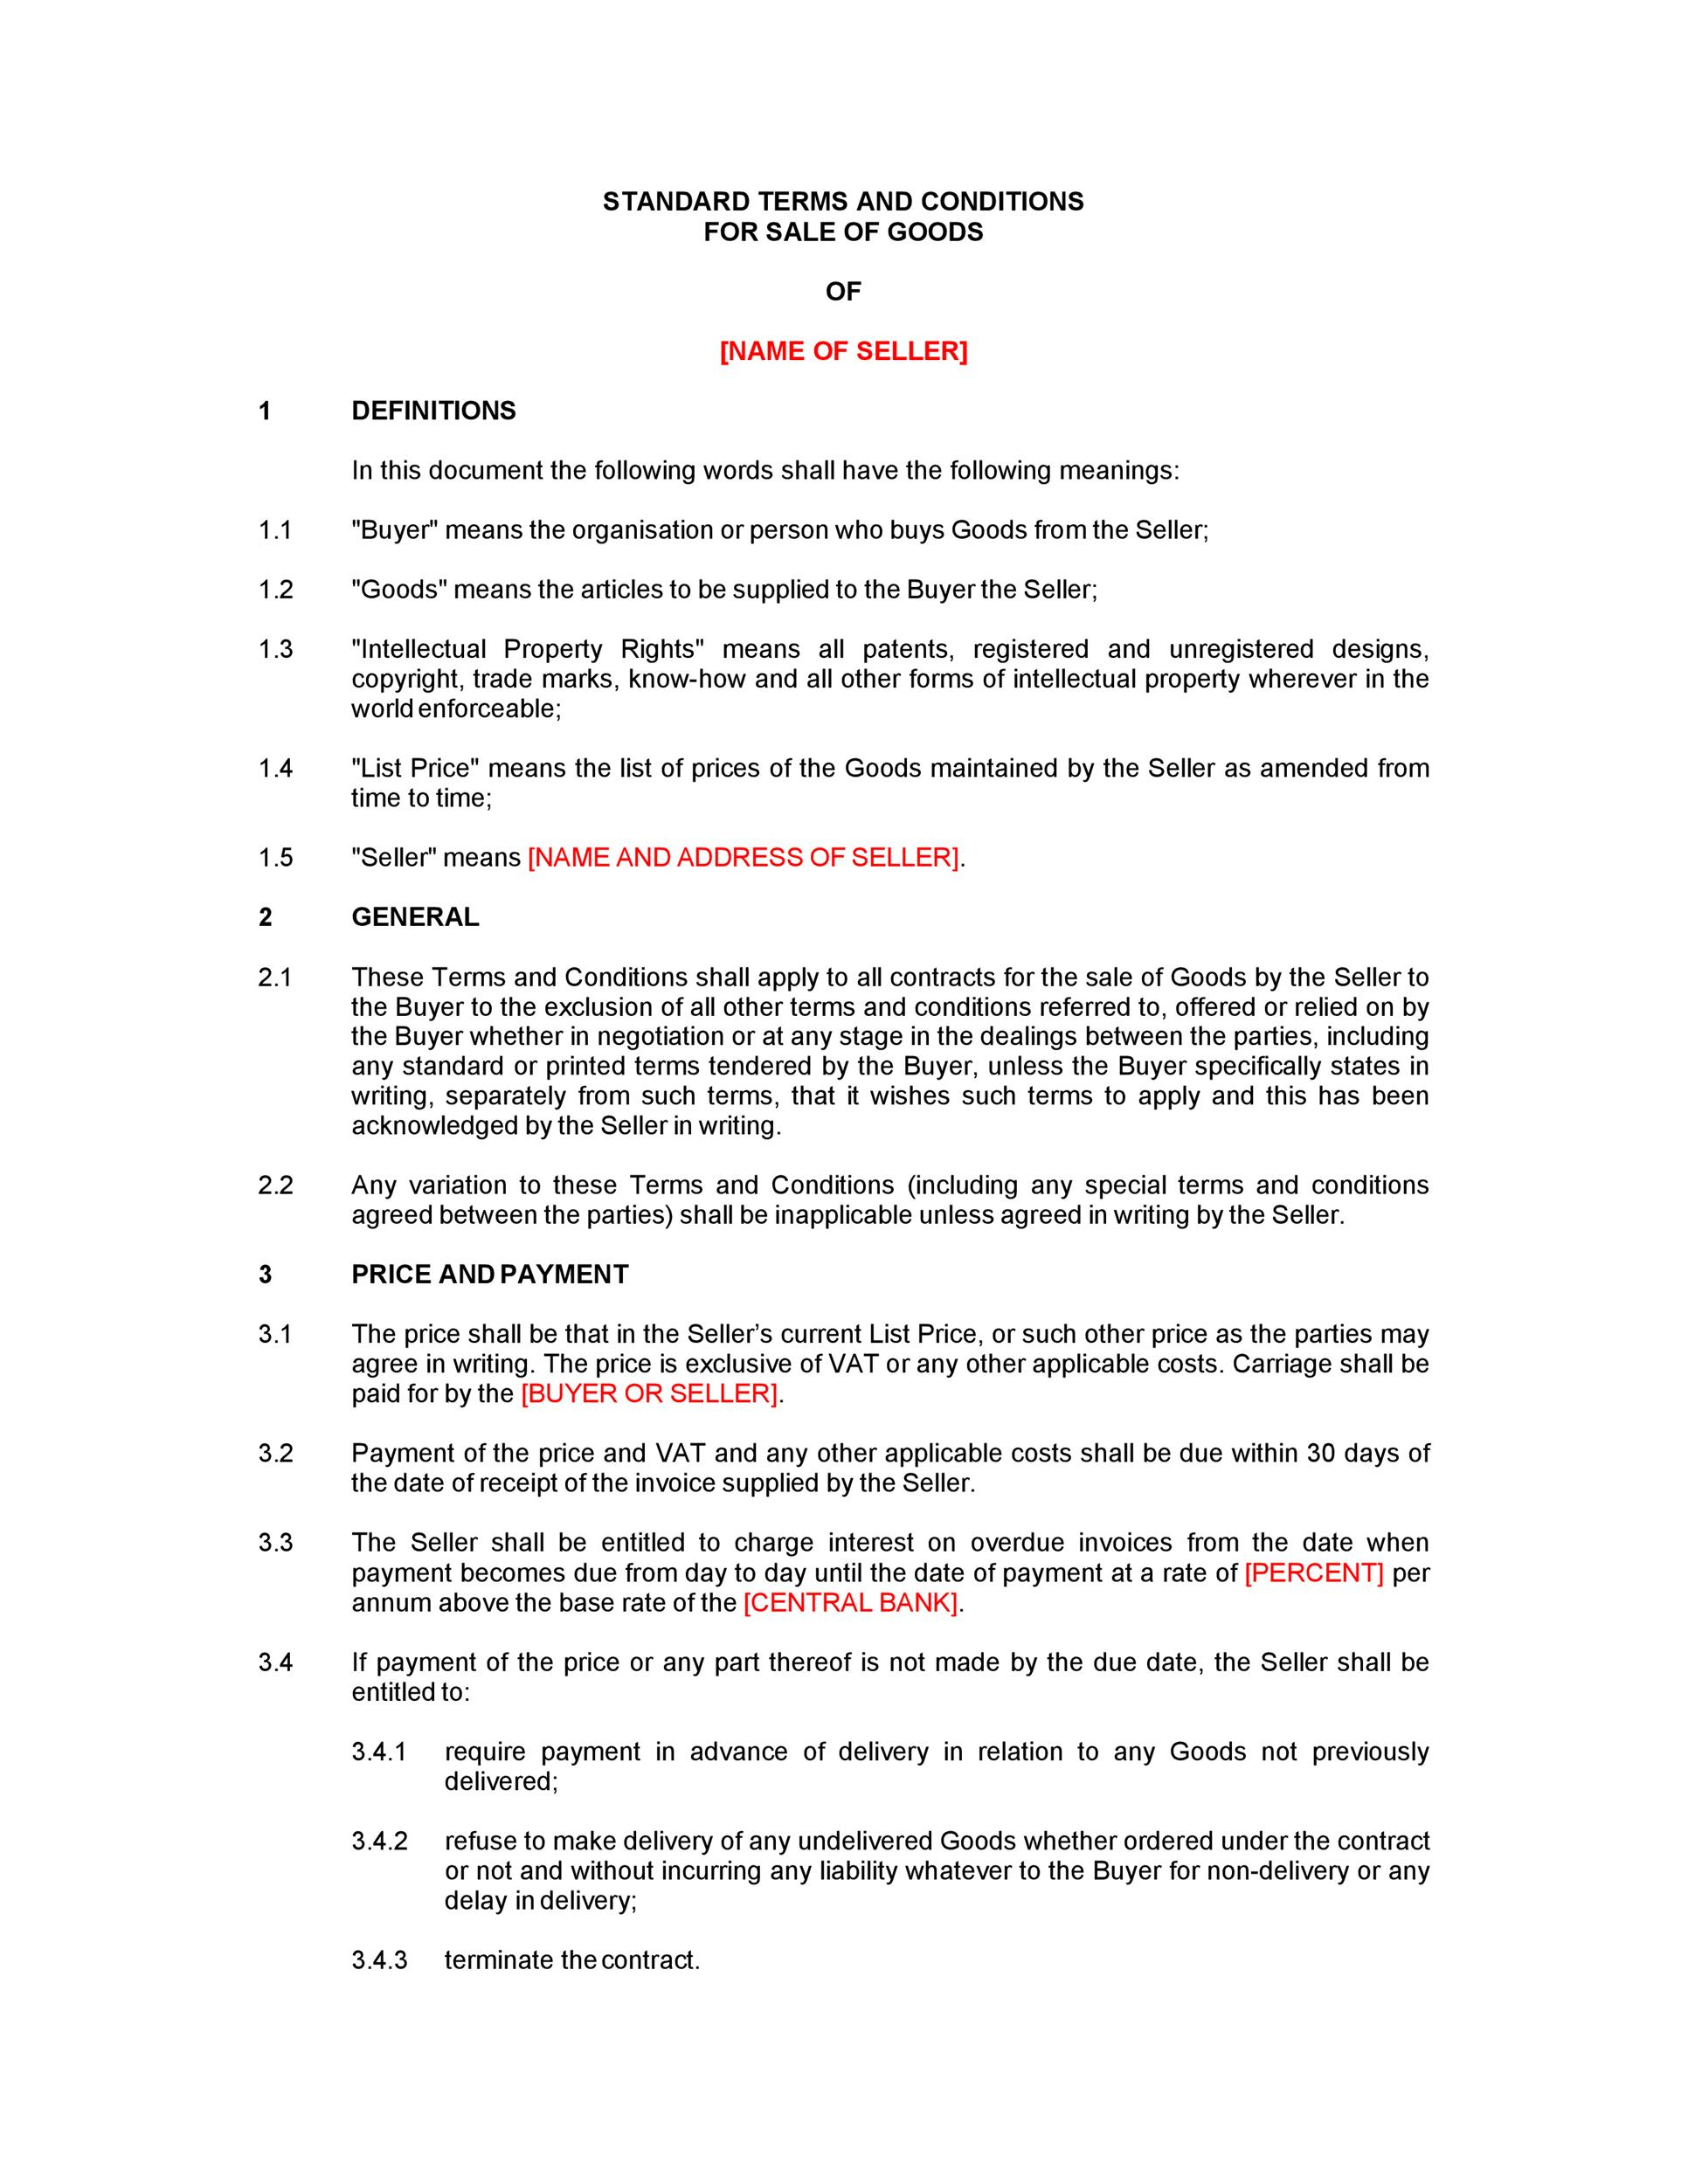 Free terms and conditions template 11